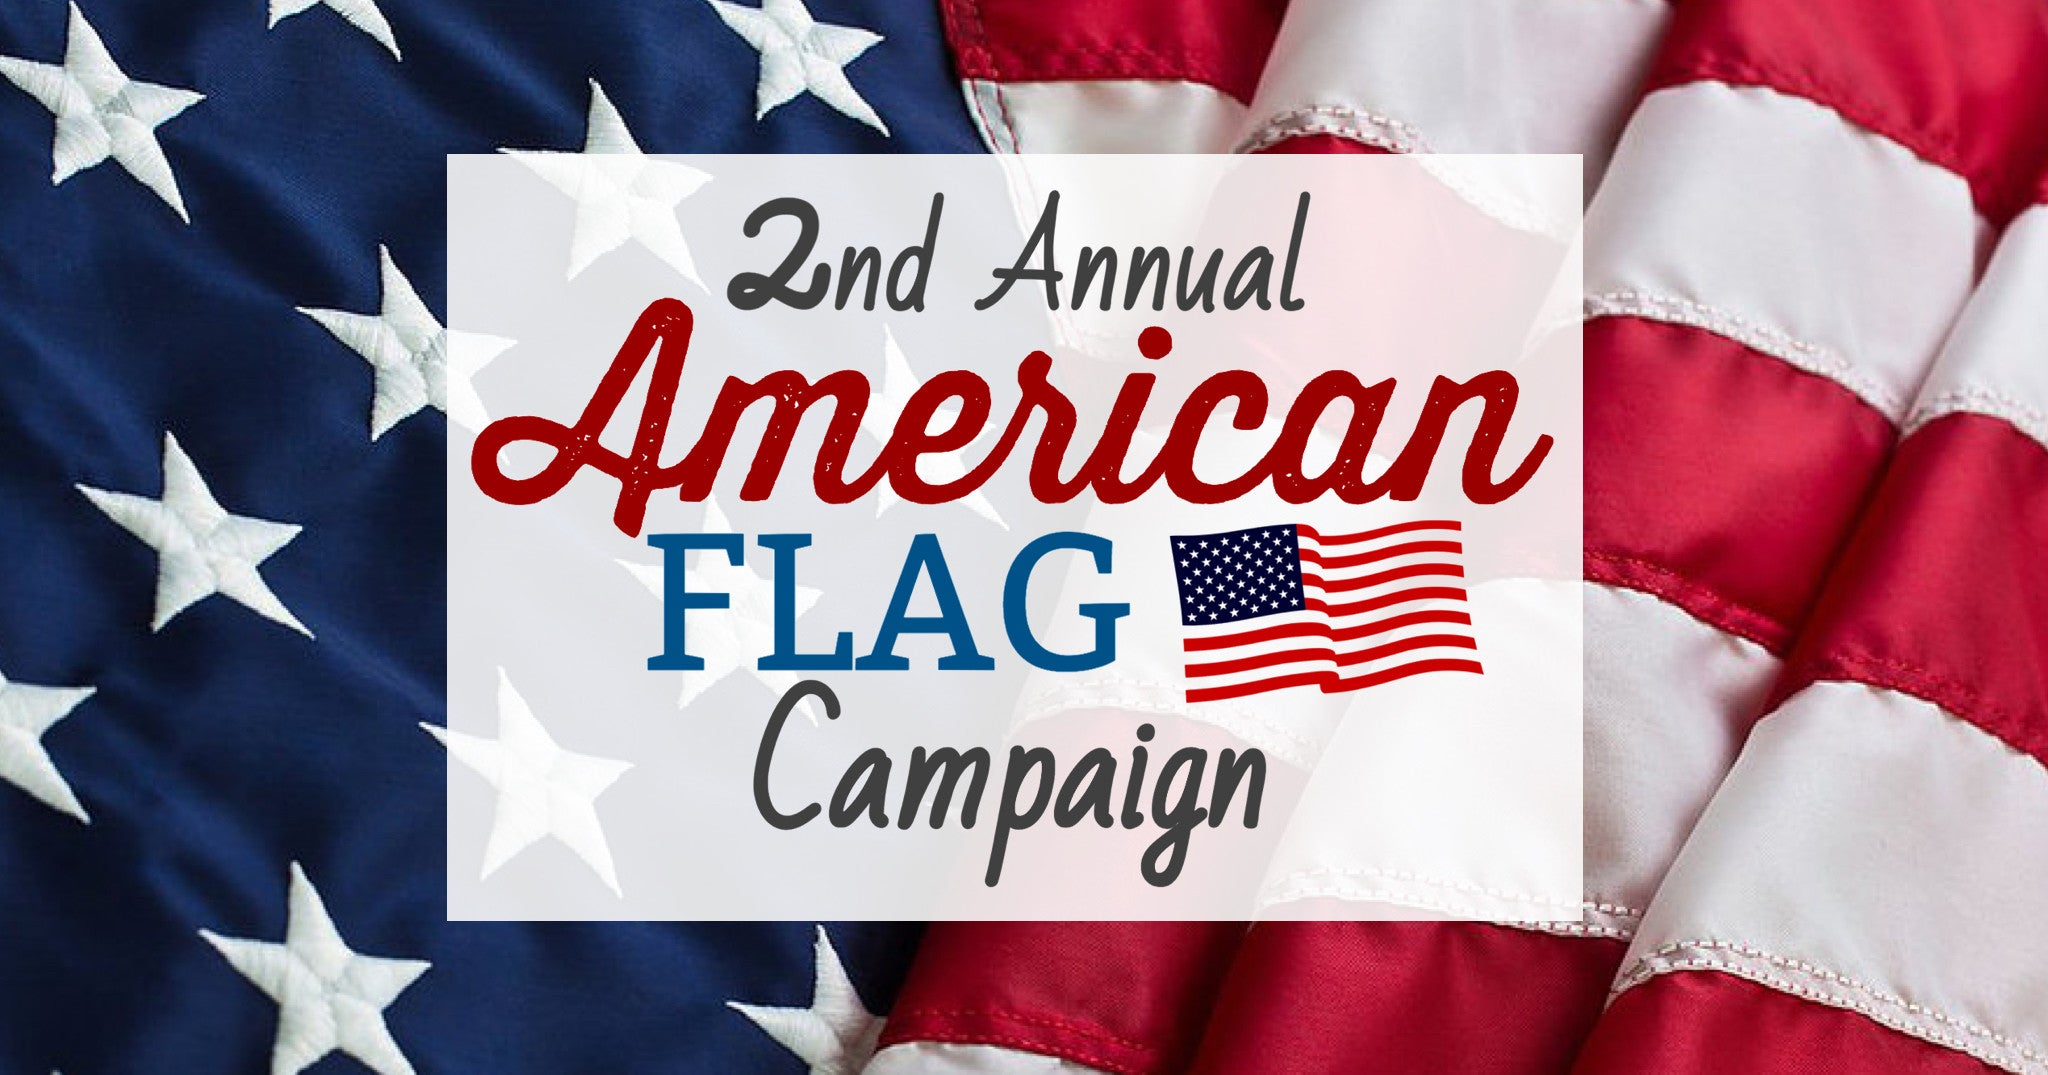 2nd Annual American Flag Campaign